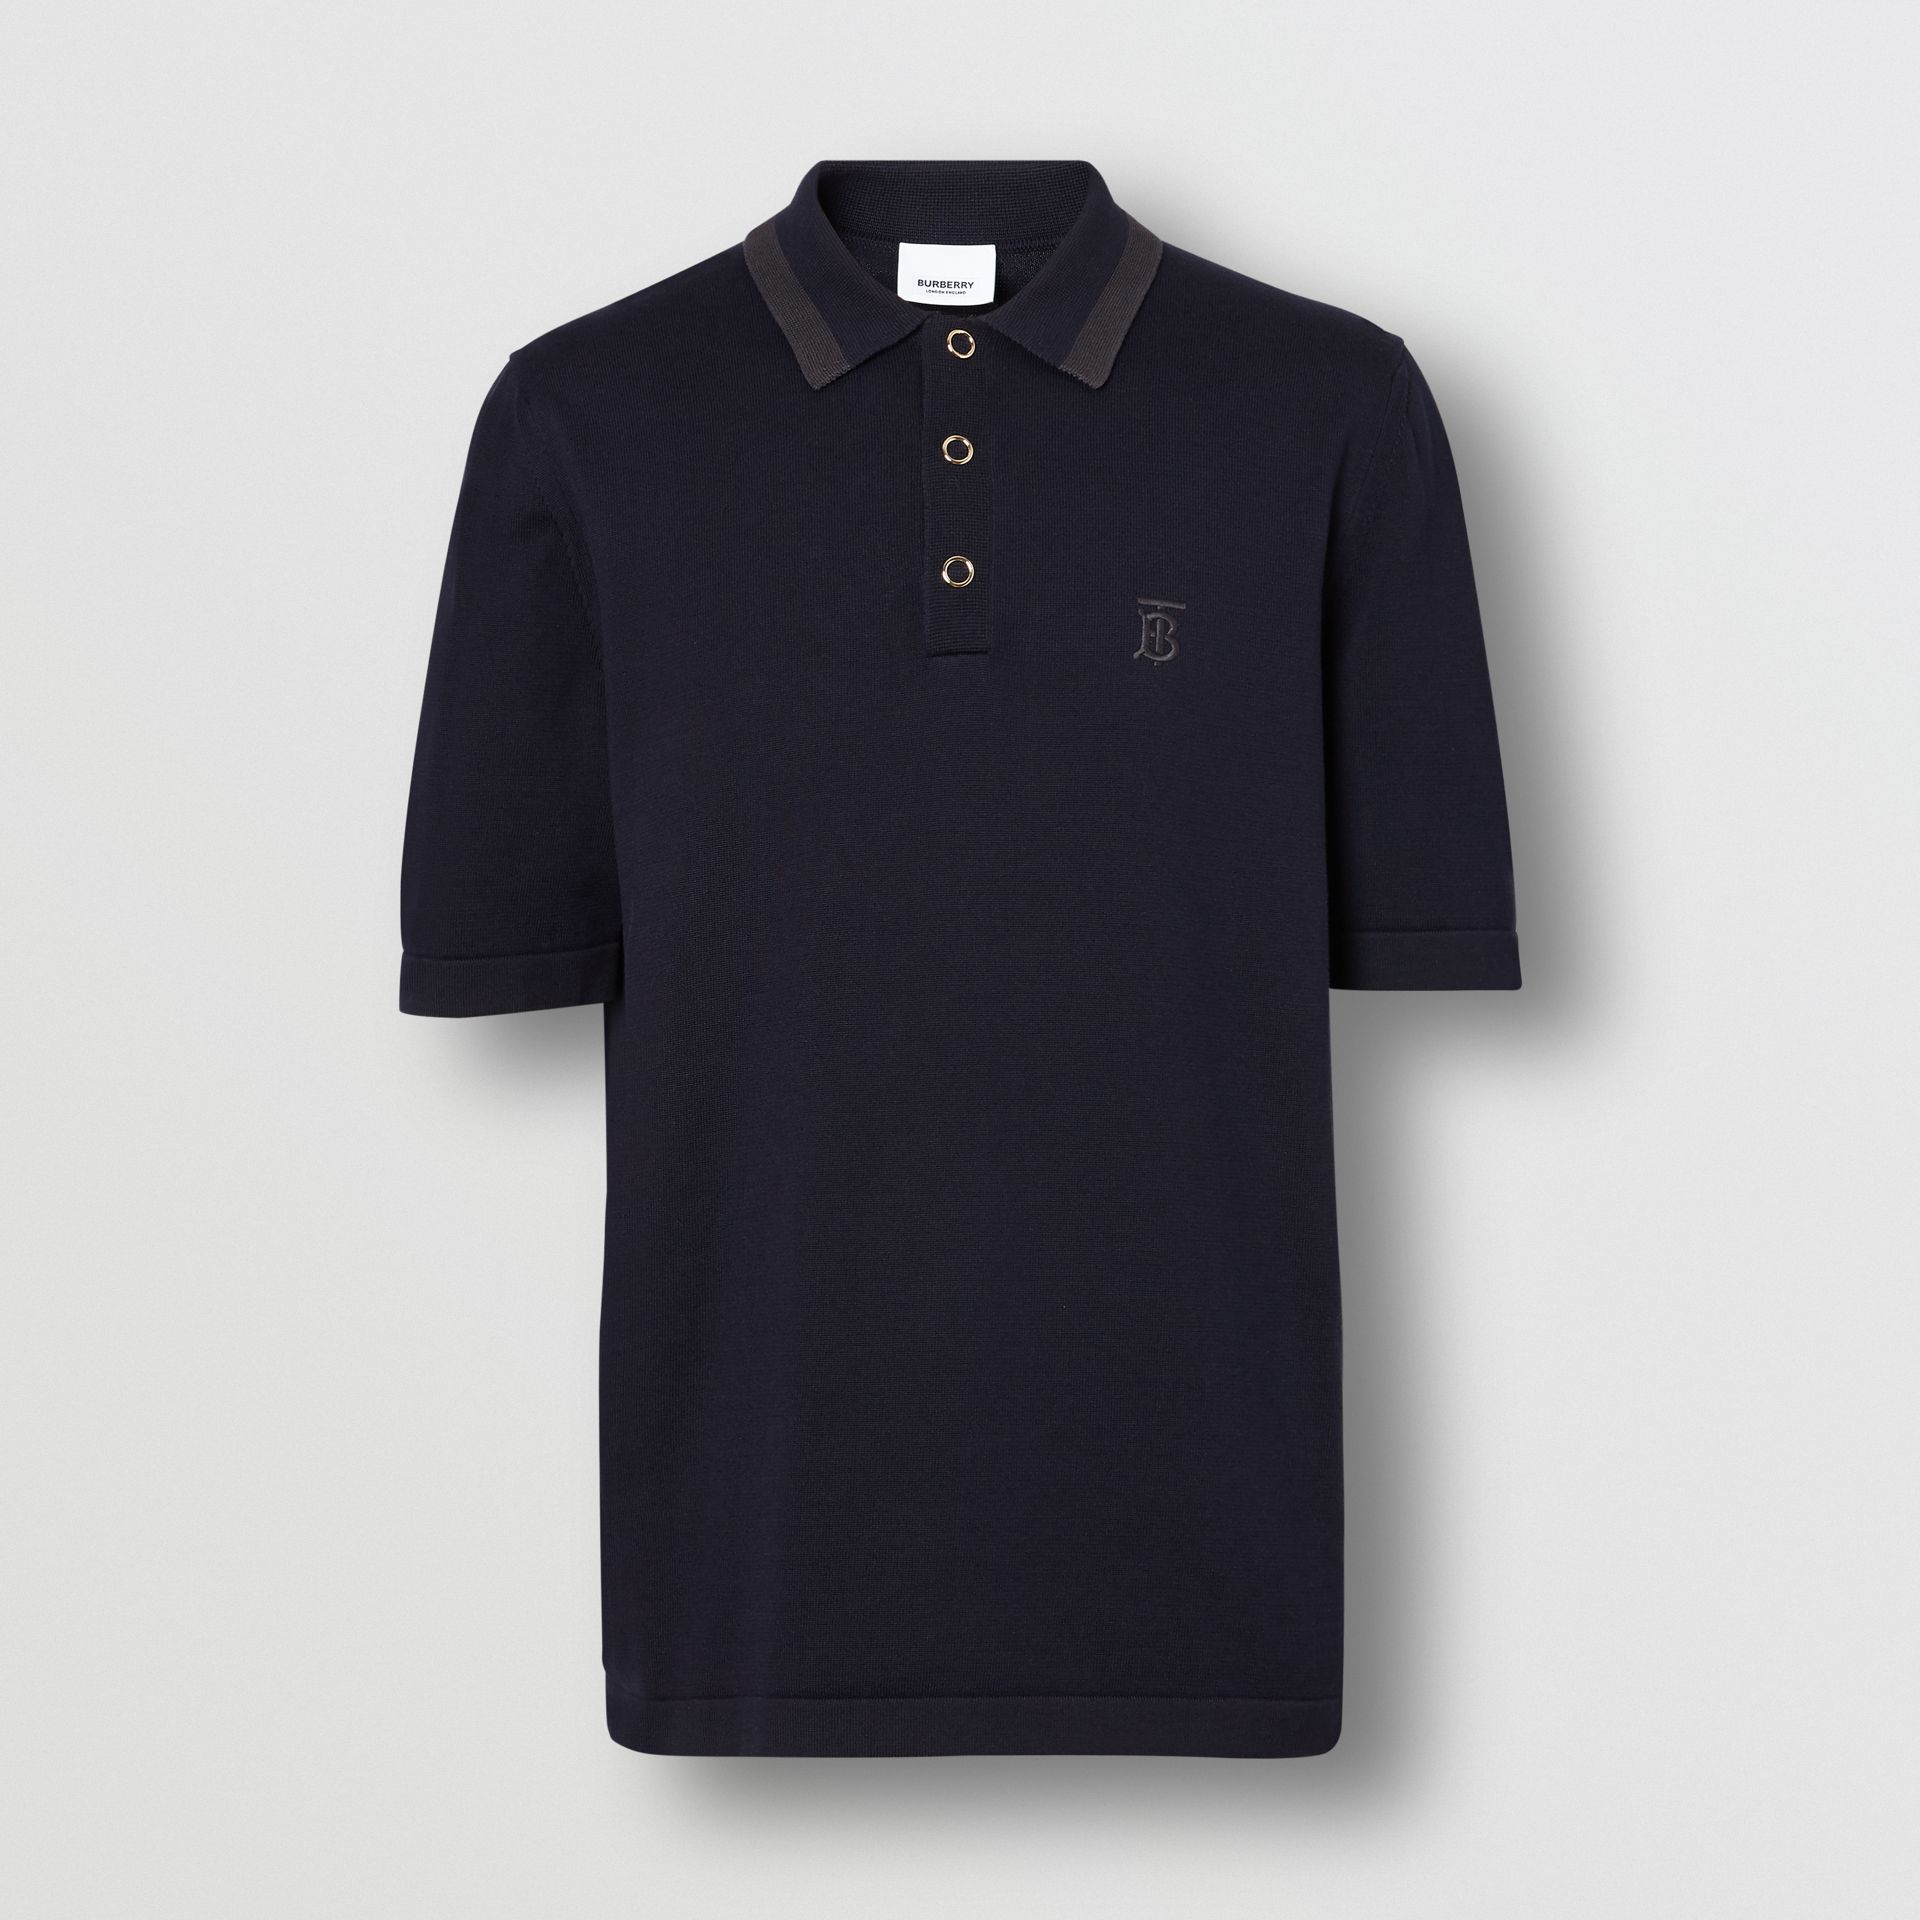 Monogram Motif Cotton Polo Shirt in Navy - Men | Burberry United Kingdom - gallery image 3